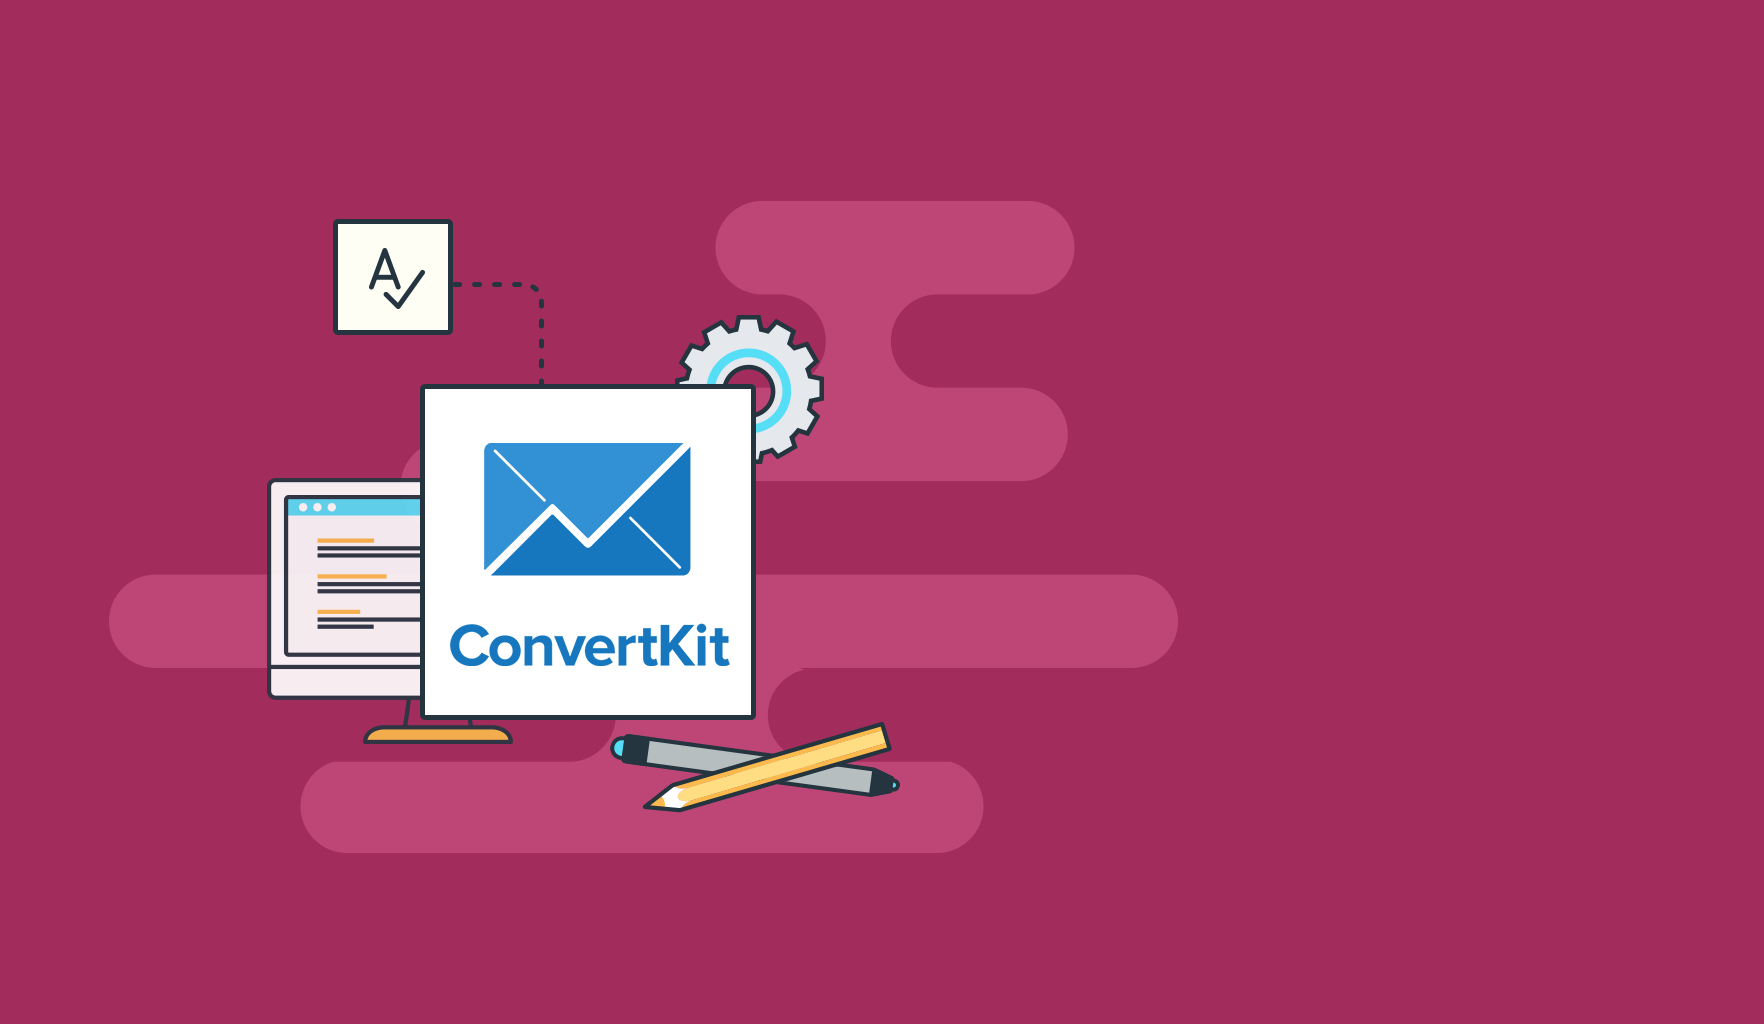 What Is Convertkit And How Much Does It Cost